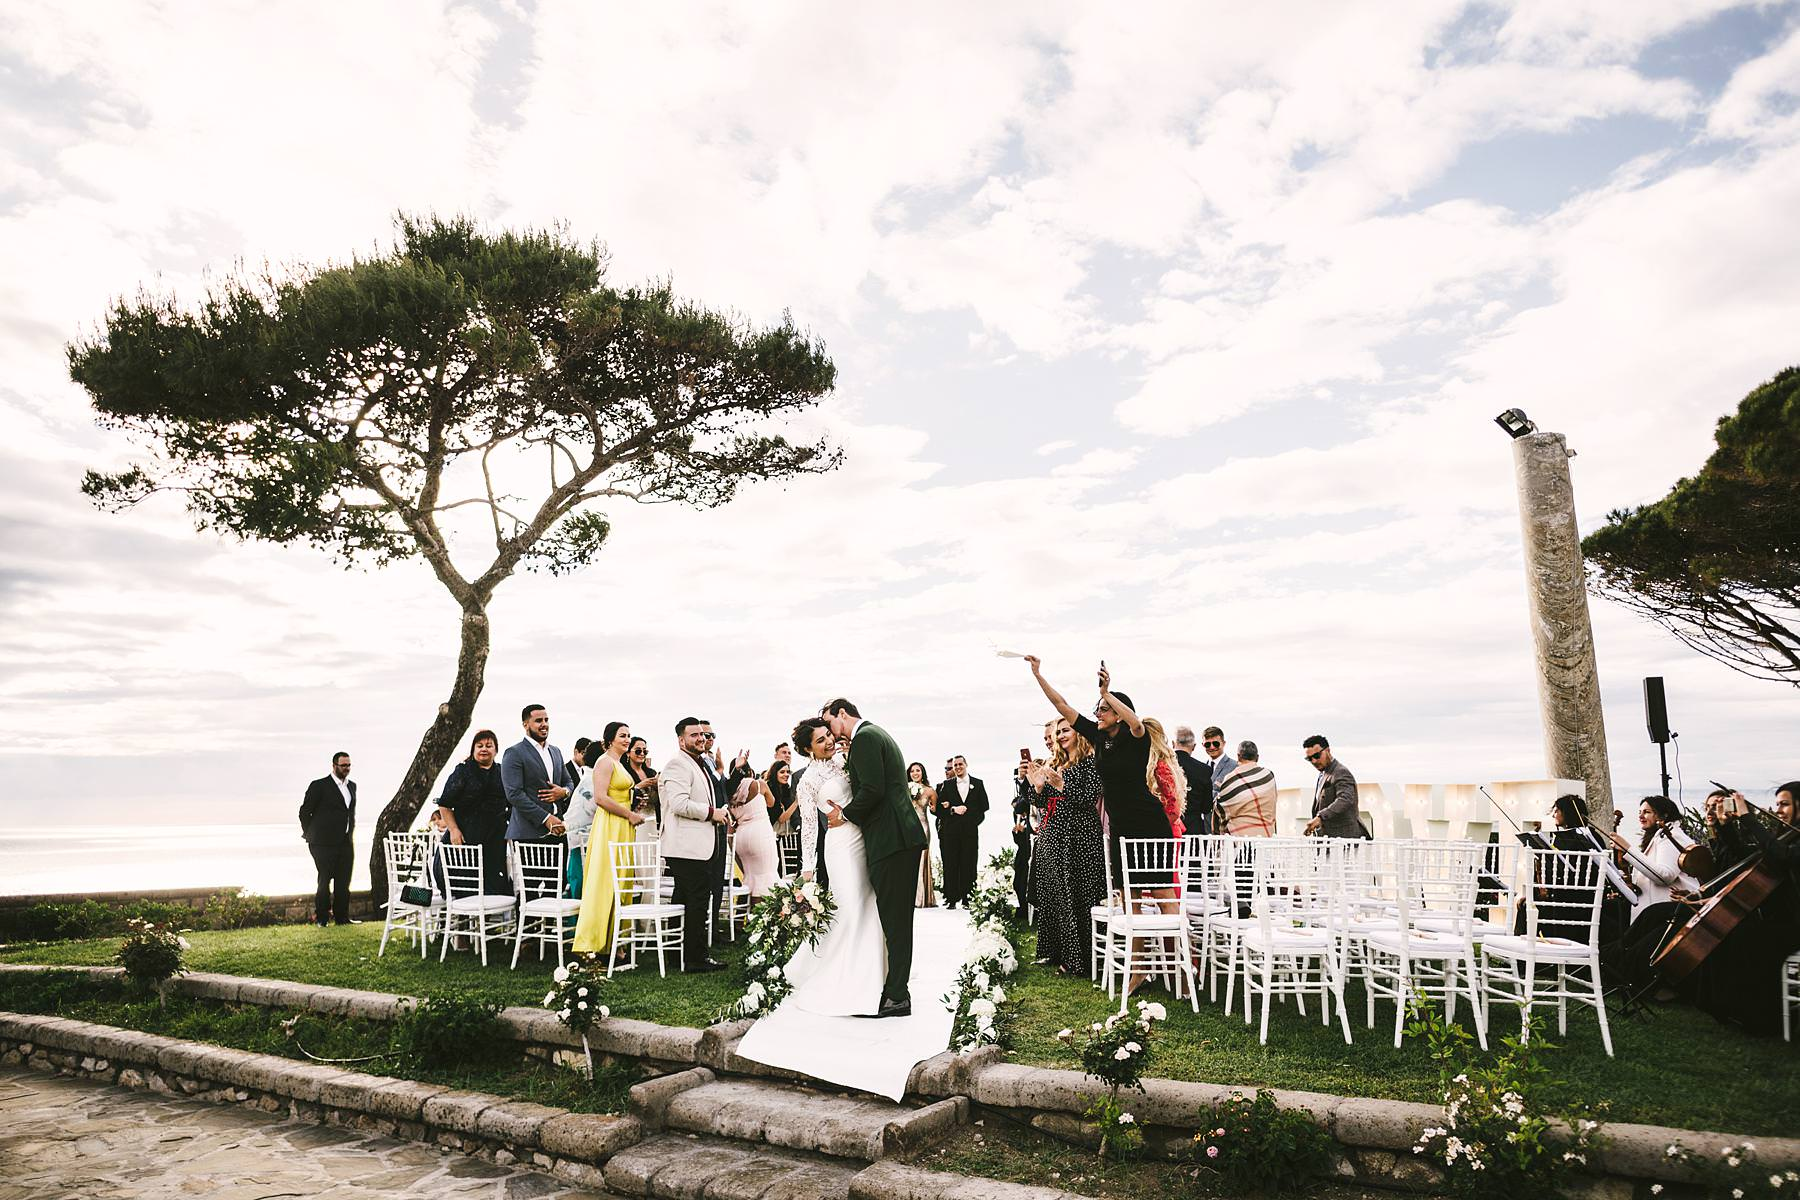 Bride and groom Steffany and Joel are just married. Destination wedding in Sorrento at Villa Angelina terrace